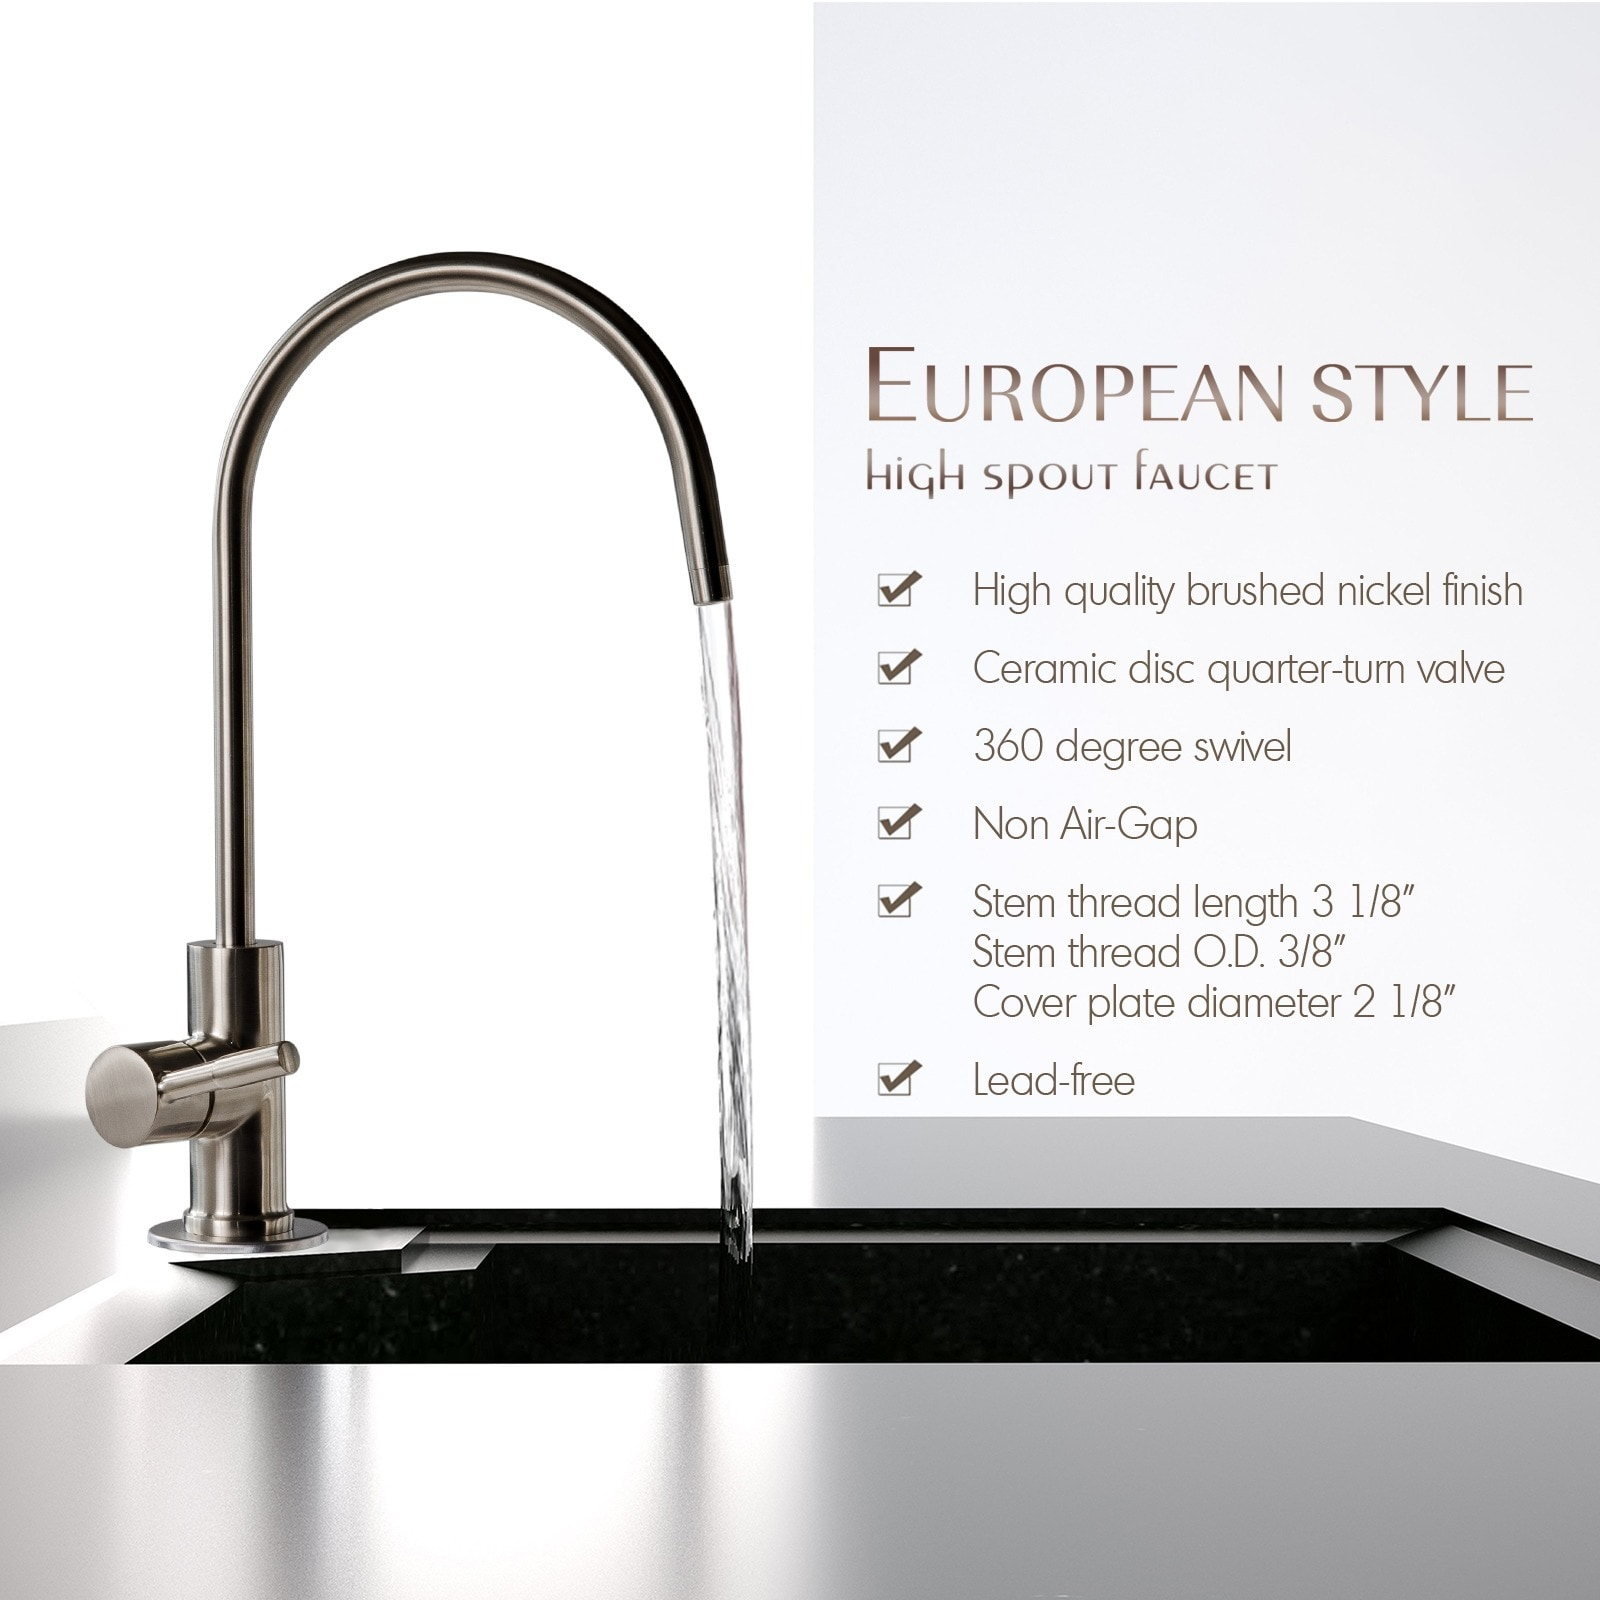 filter gap water premium osmosis non air ro faucet reverse faucets universal chrome plated